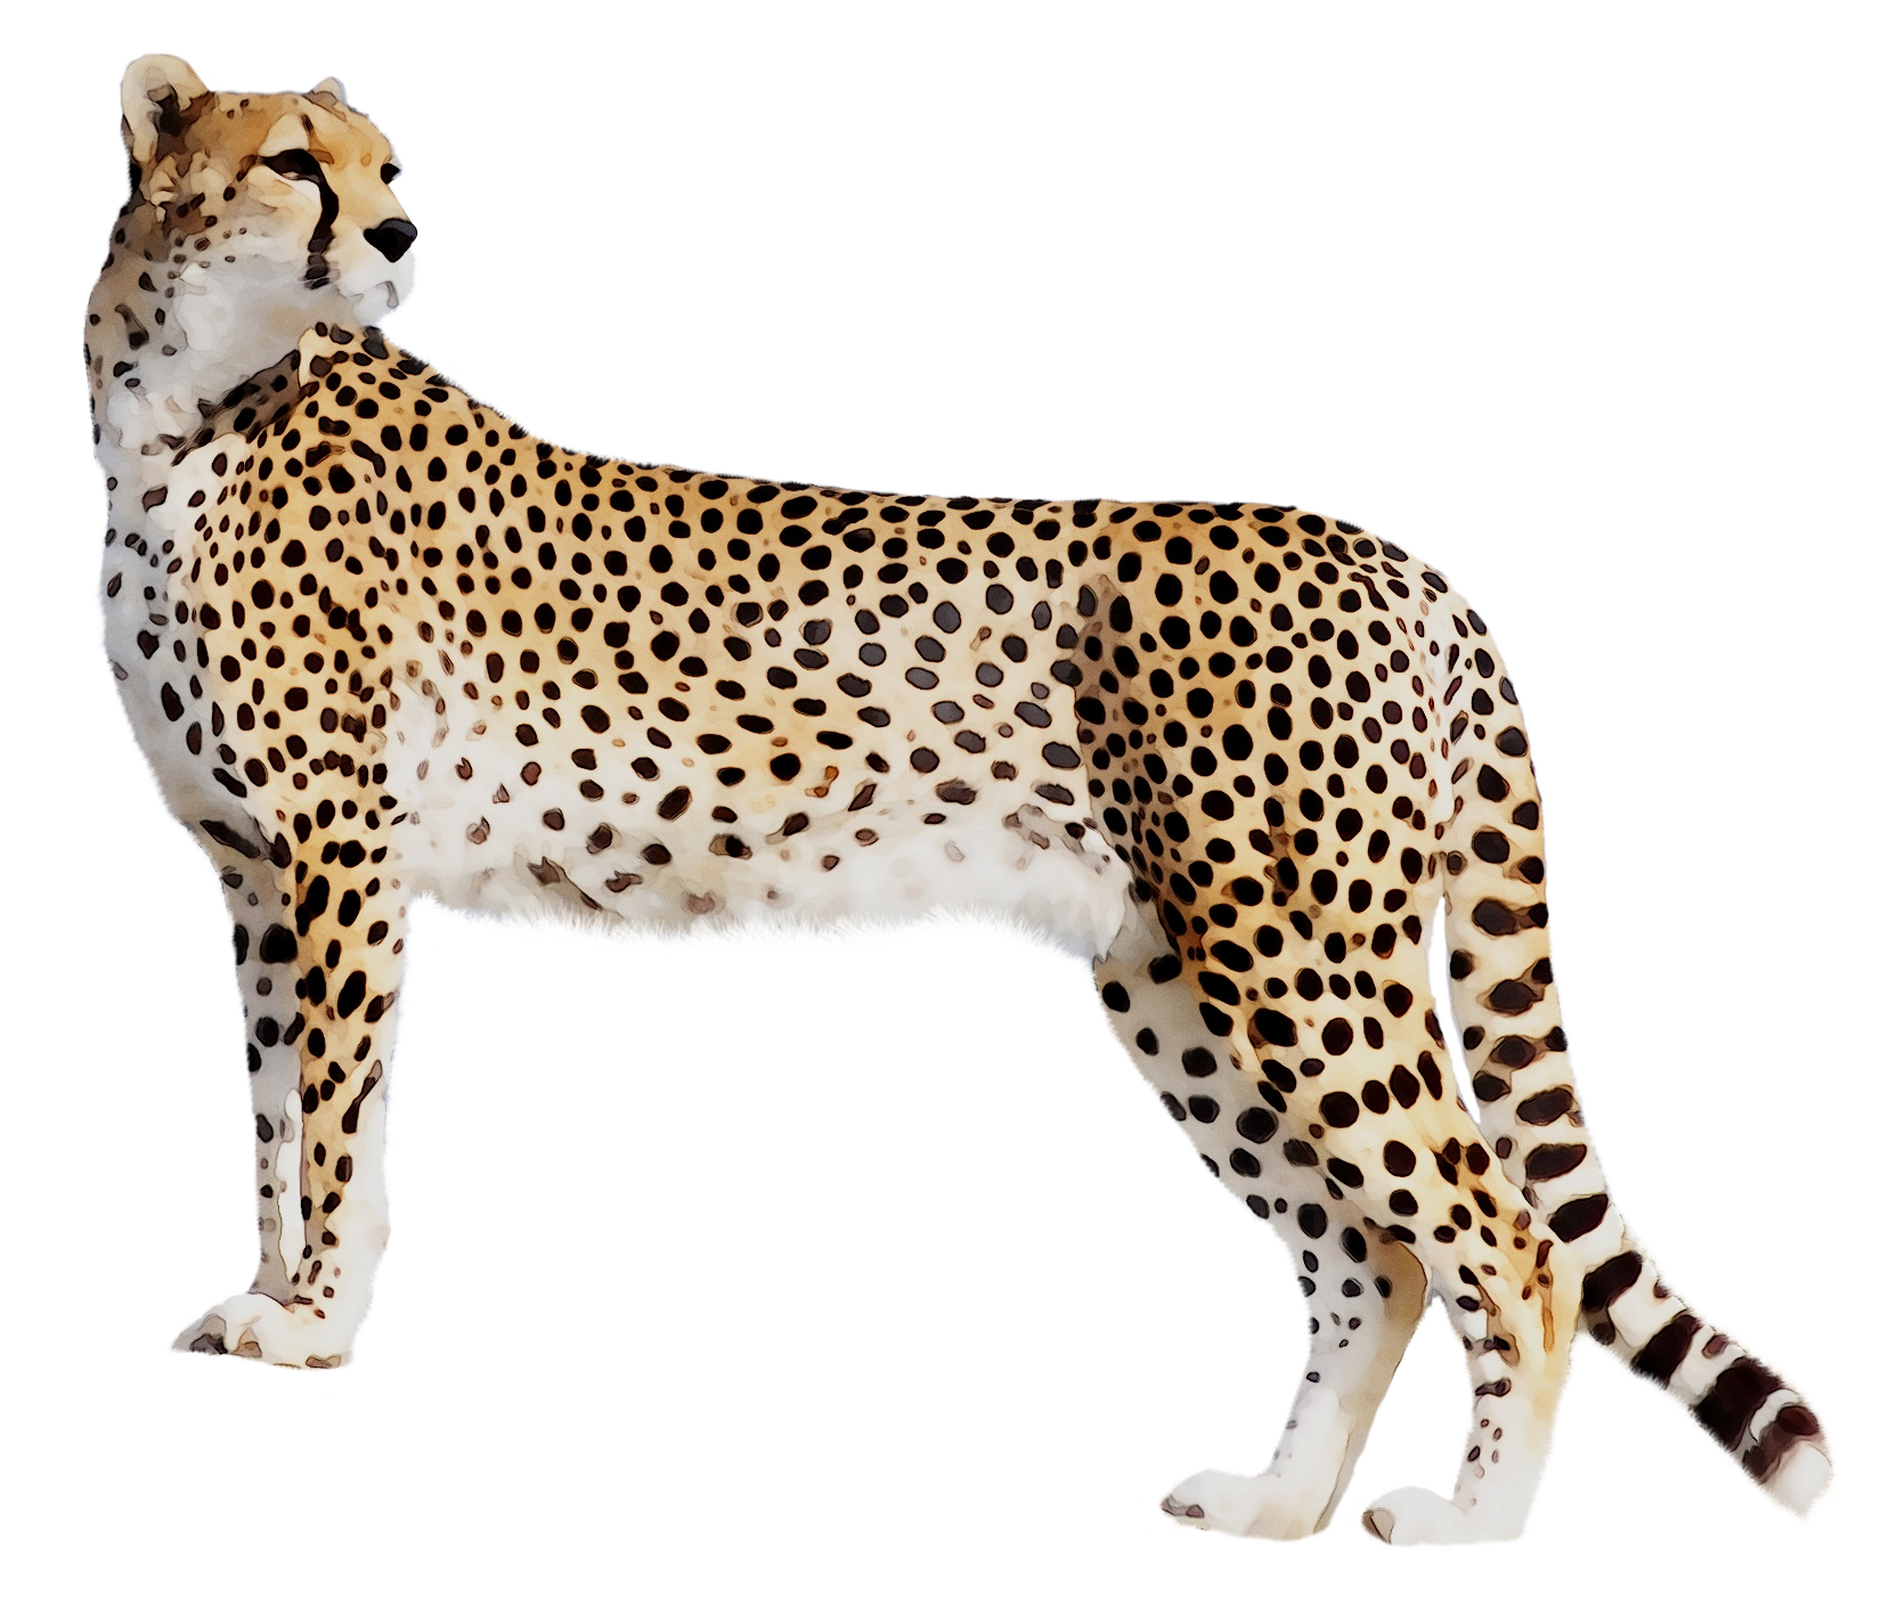 Rainbow Cheetah Png - Download Panther Leopard Cat Tiger Black Cheetah Clipart PNG Free ...